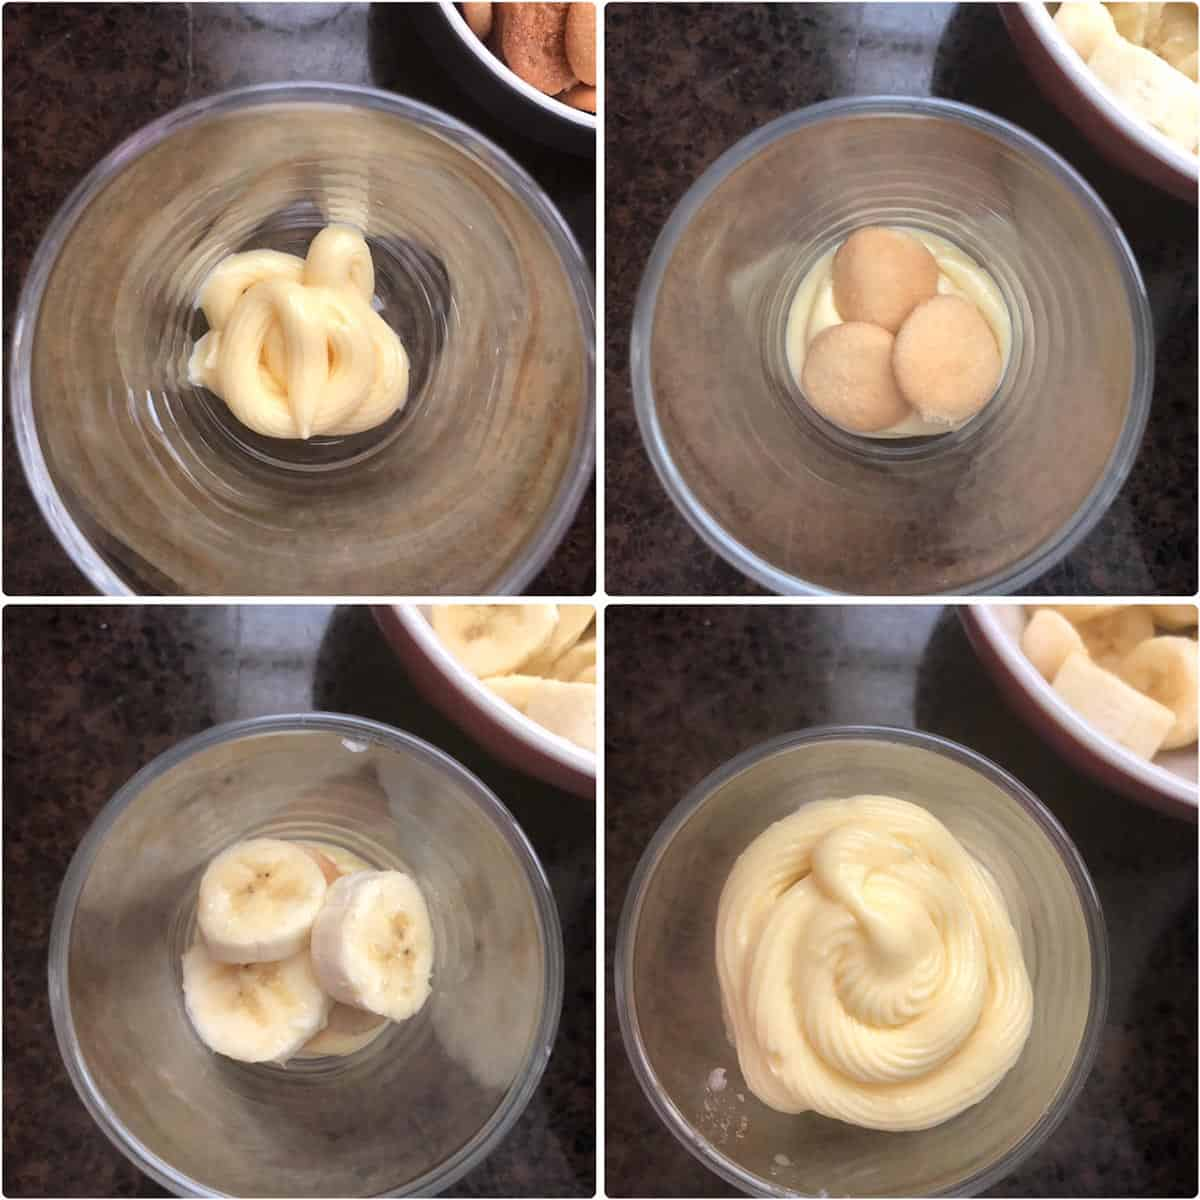 Layering vanilla pudding, wafers and bananas in a cup